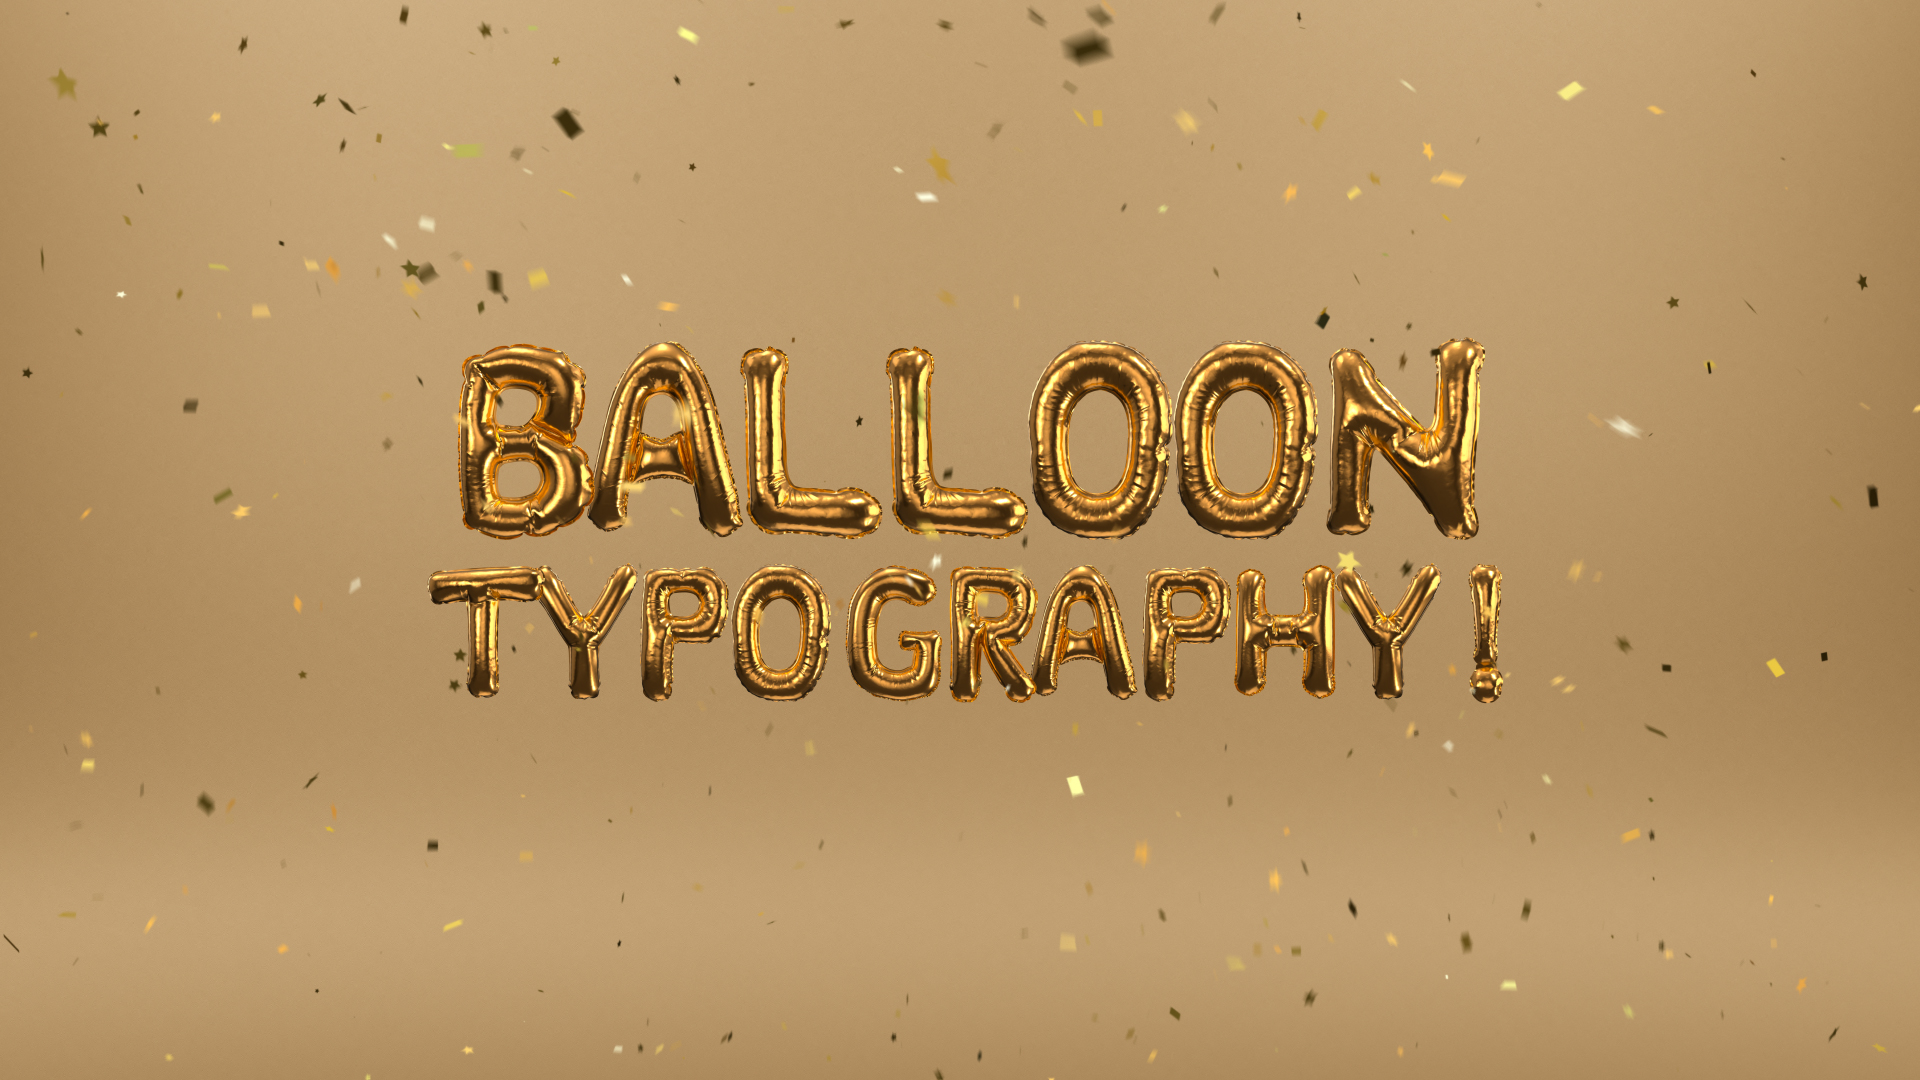 Animated Typography - Balloons